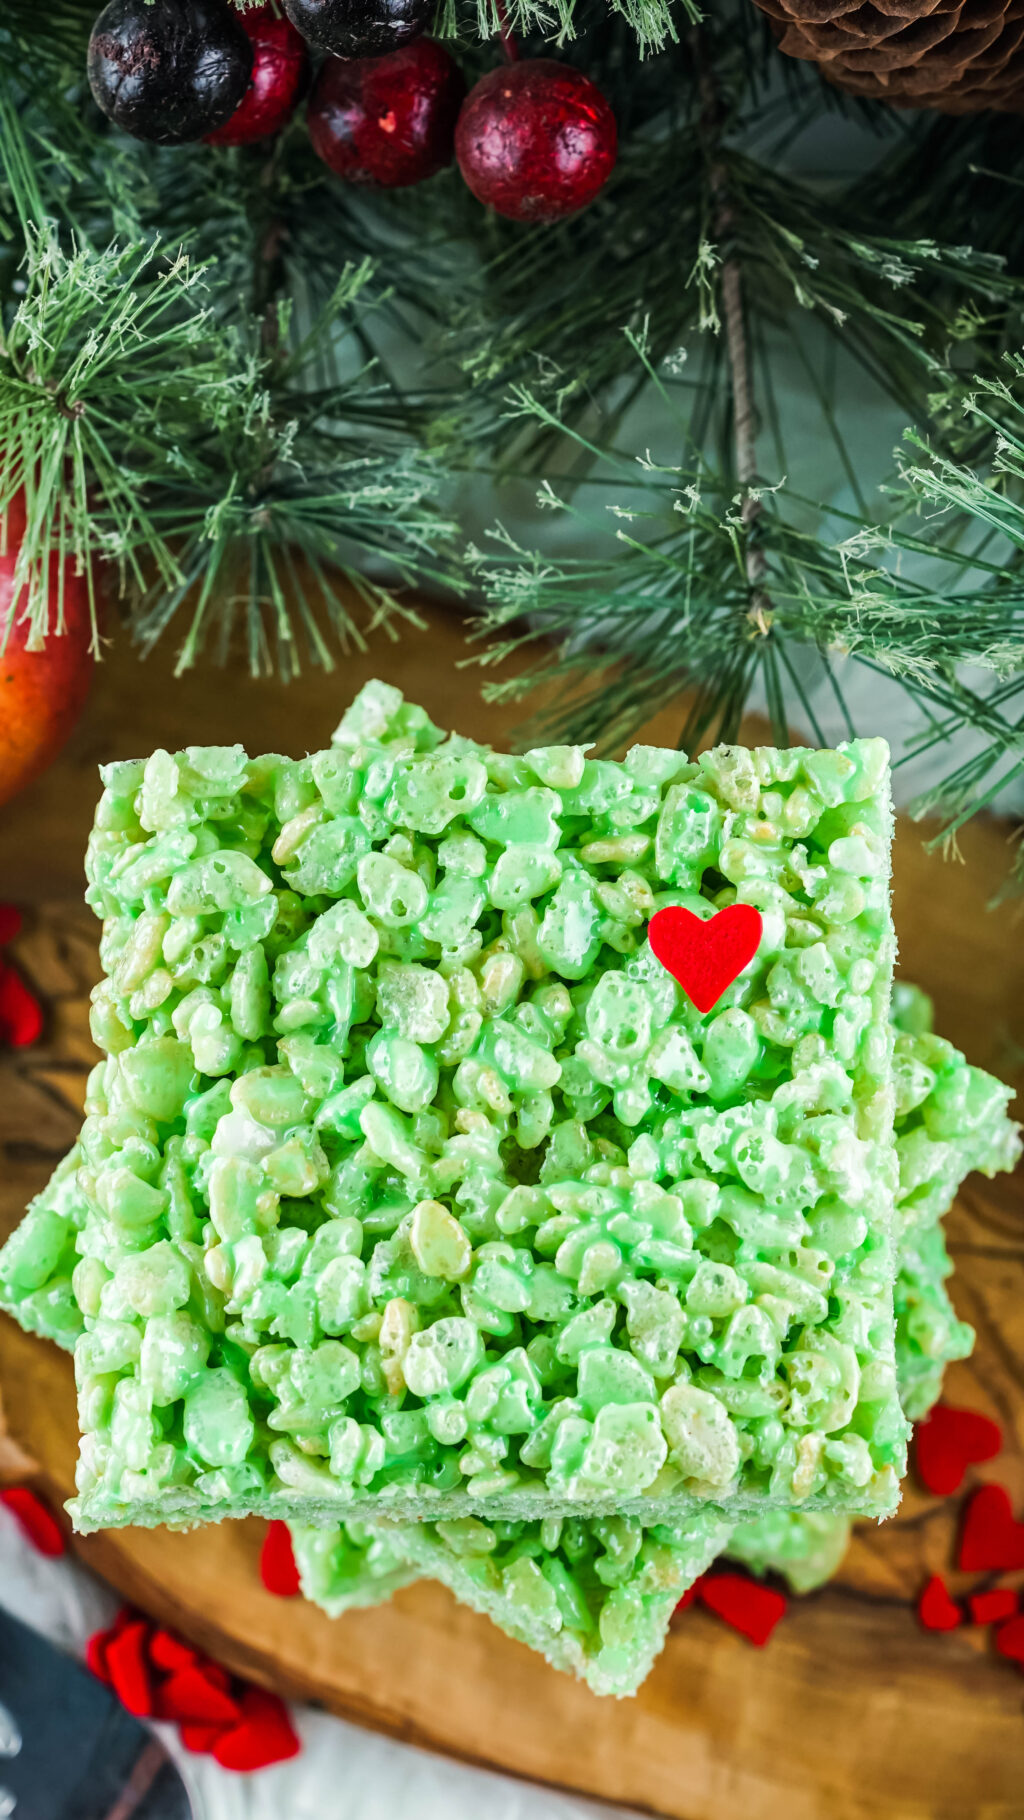 green grinch rice krispies treat stacked on wood plate